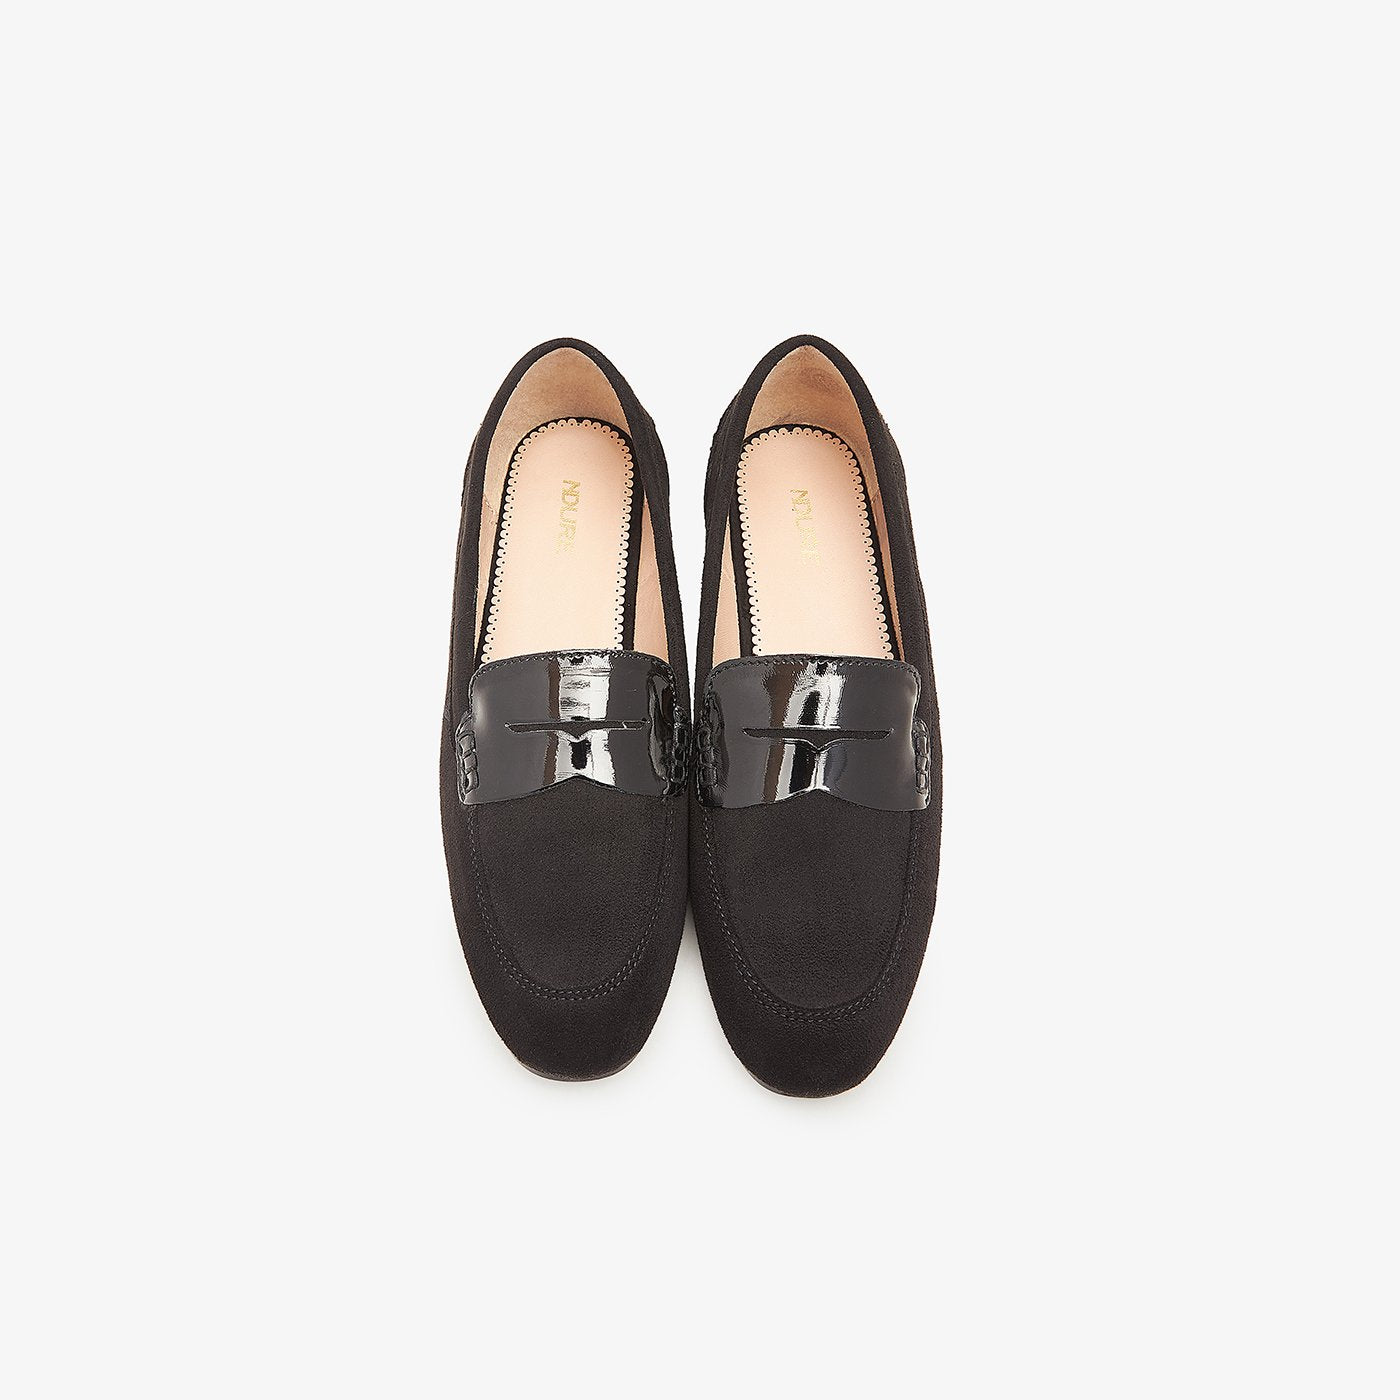 Trendy Loafers for Women